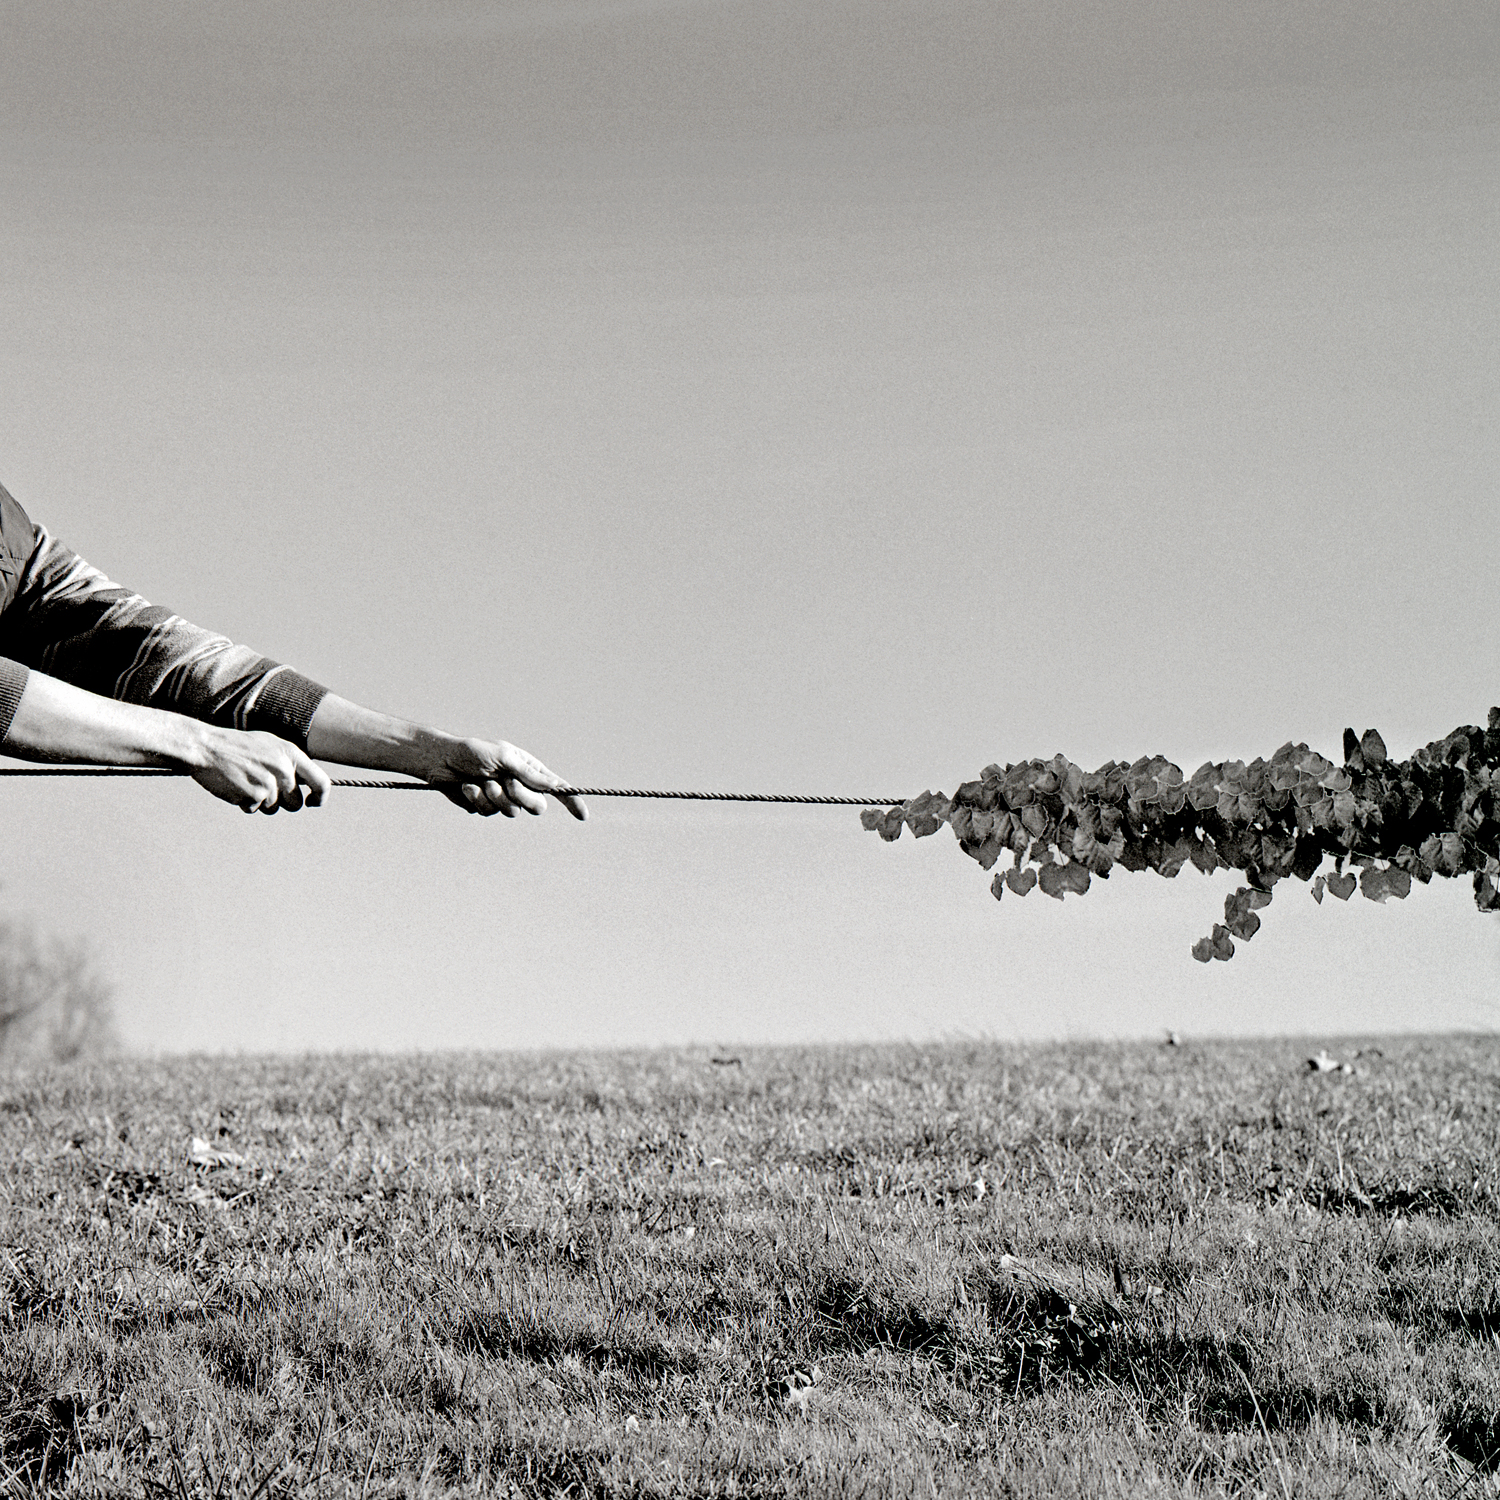 Tug of War, 2006, archival pigment print on paper